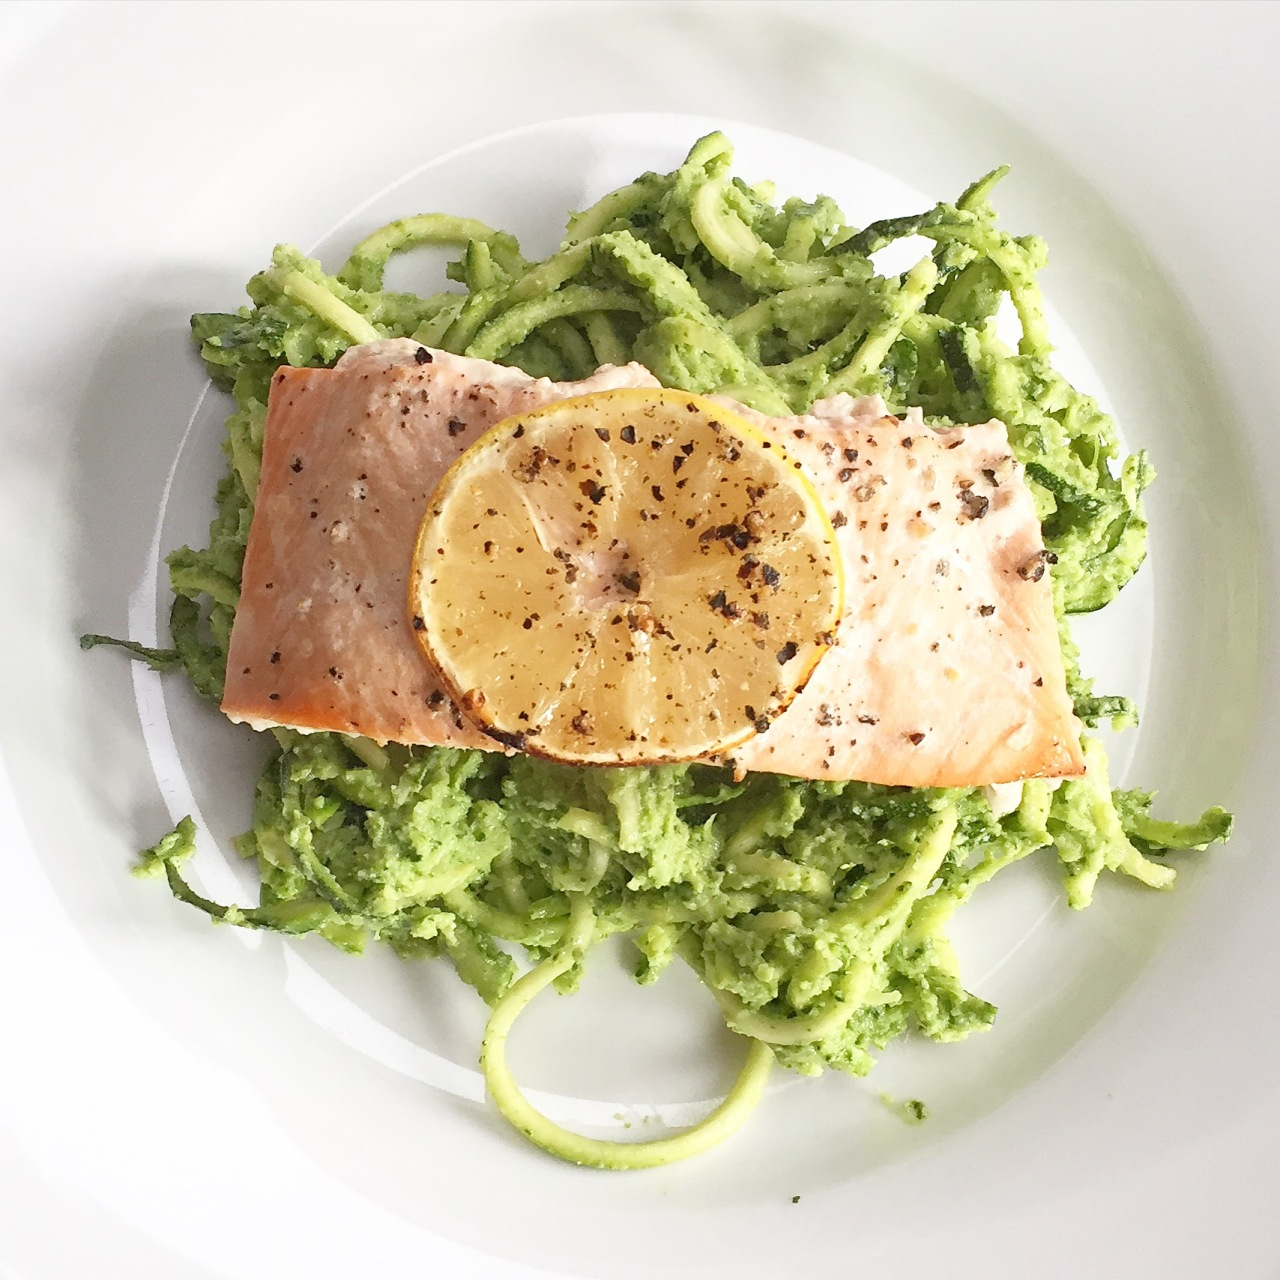 Baked salmon with creamy pestocourgetti